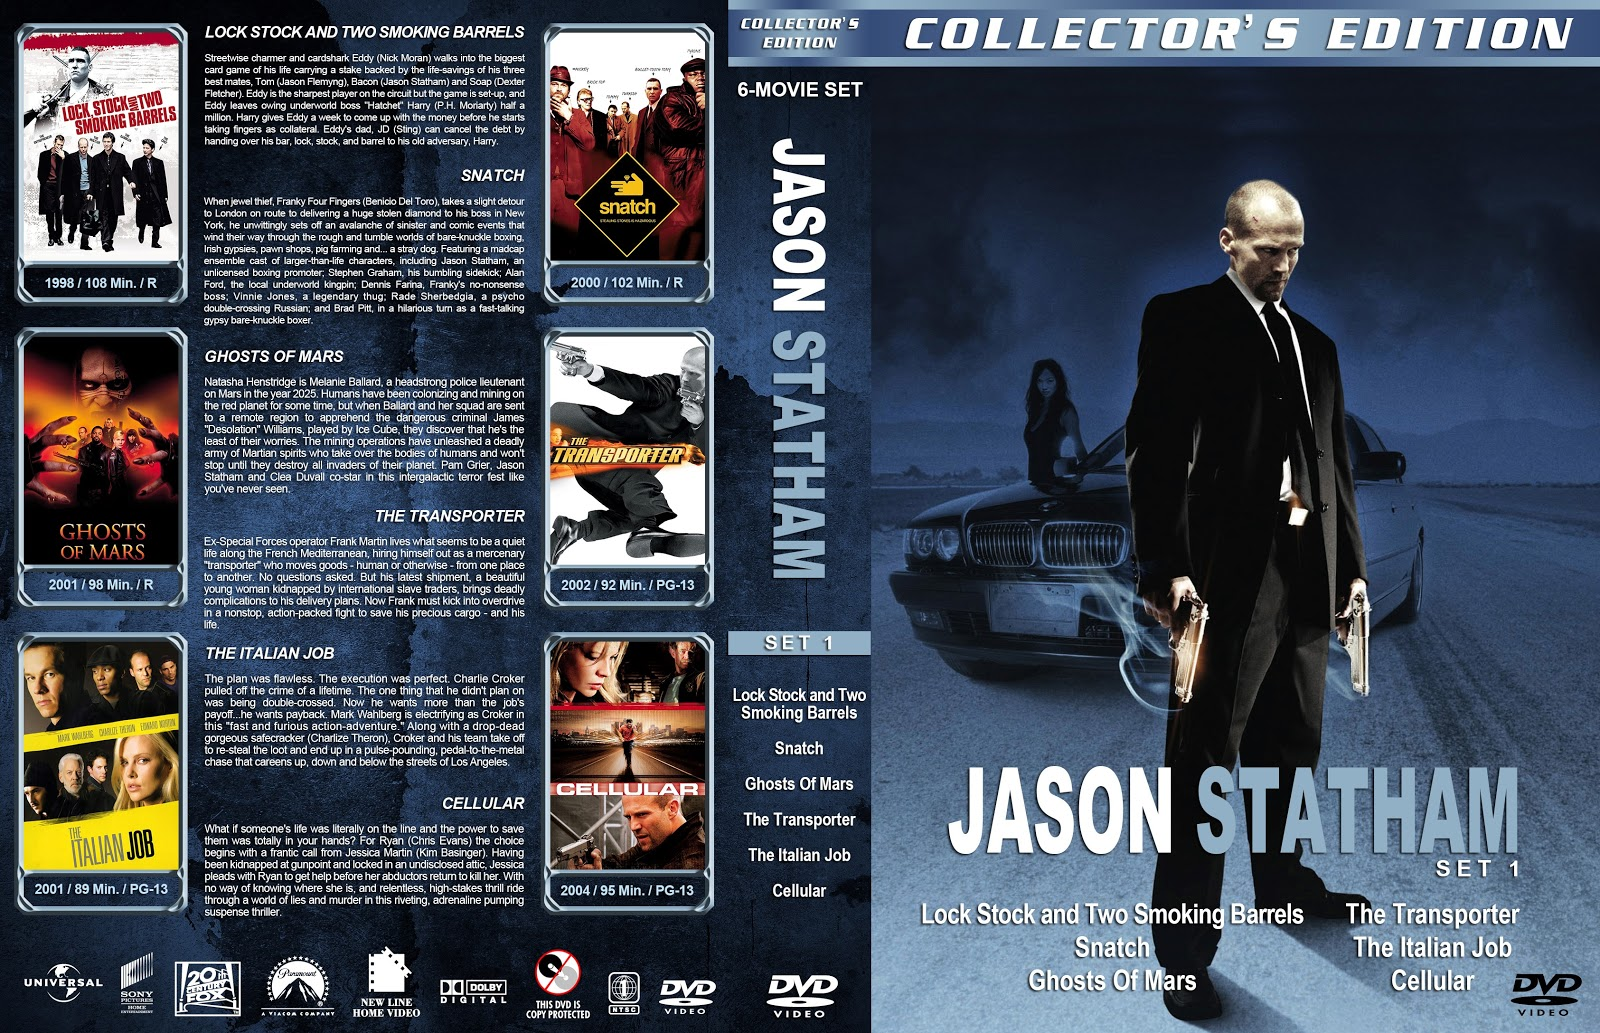 Jason Statham Collection Set 1-5 [Large Spine] DVD Cover